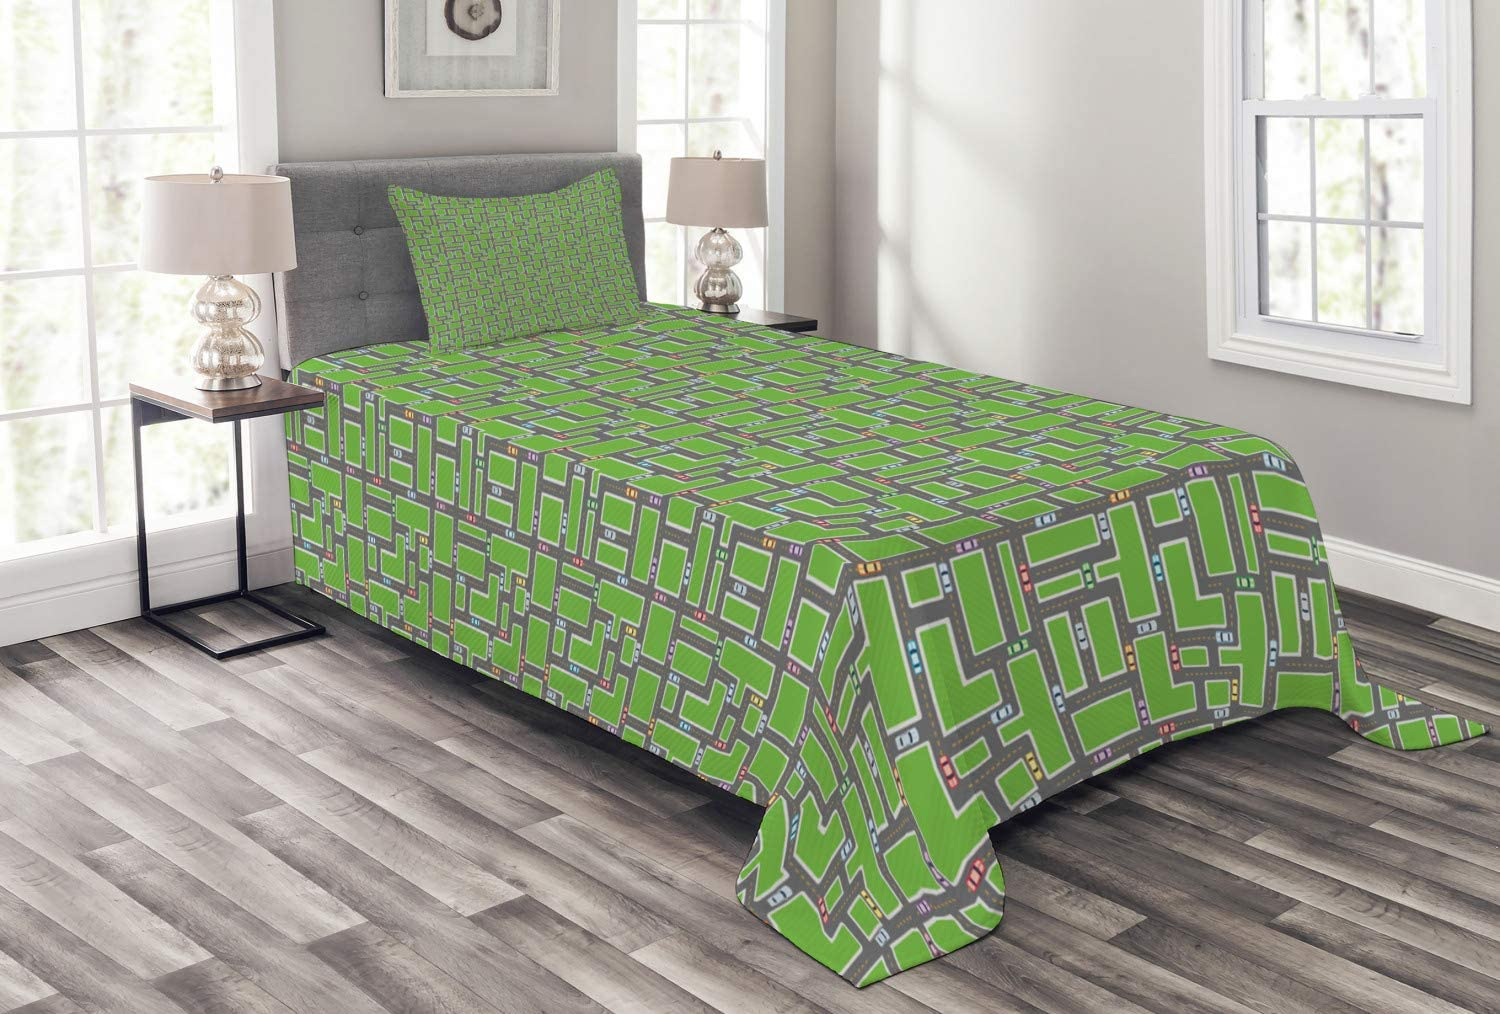 Ambesonne Car Tucson Mall Race Track Intersecting Cartographic Choice Ro Bedspread